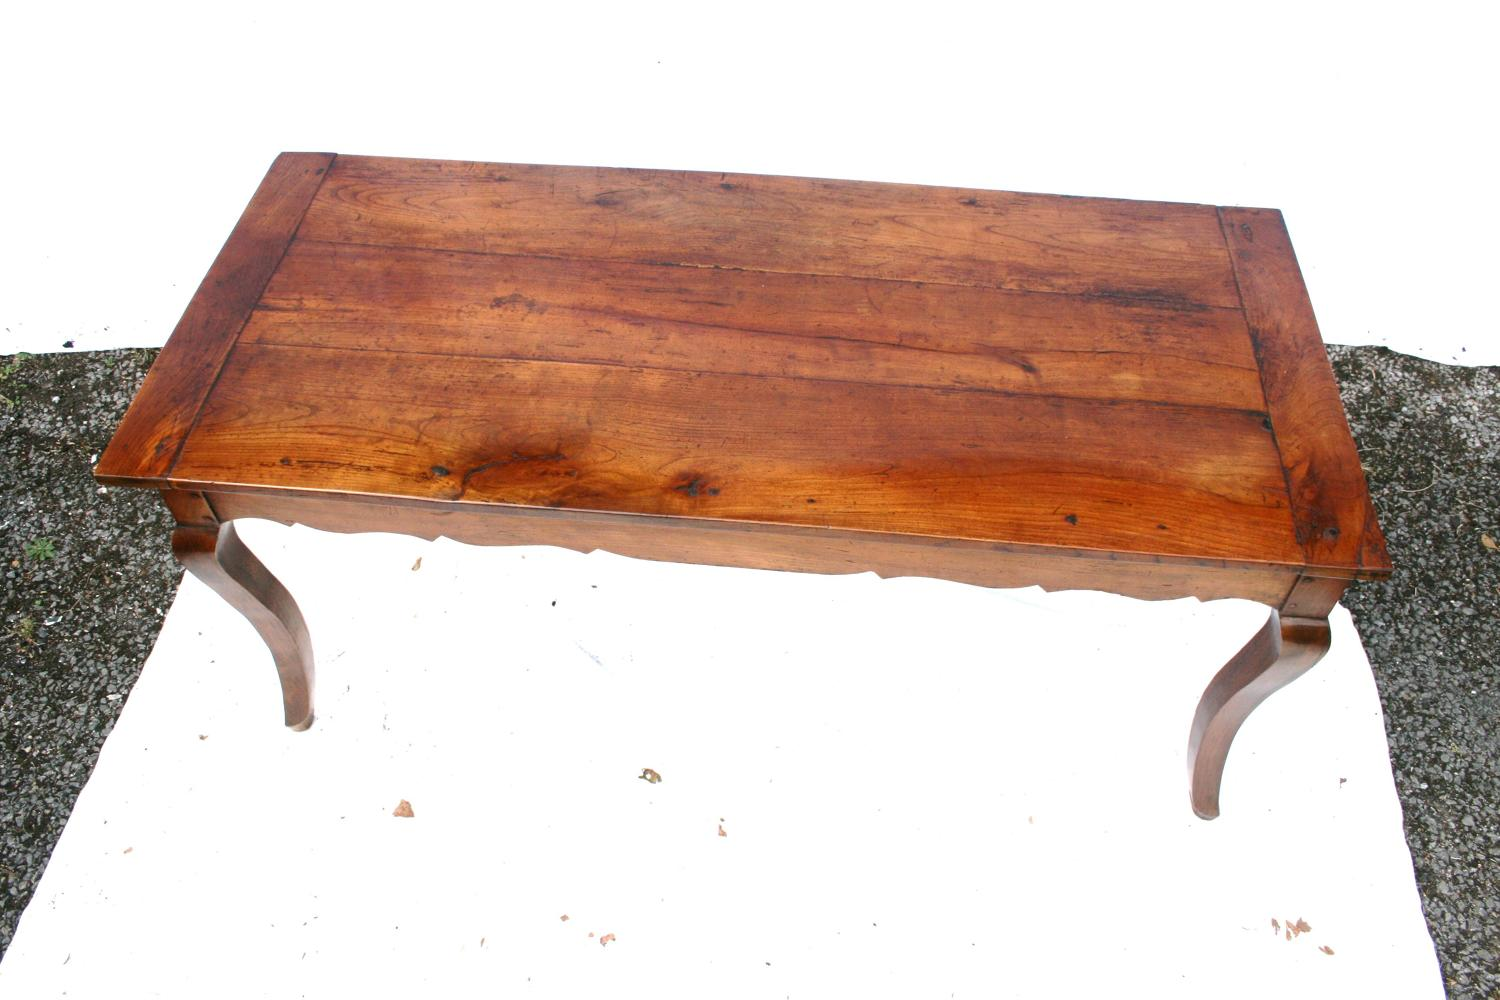 18th century cherry wood table